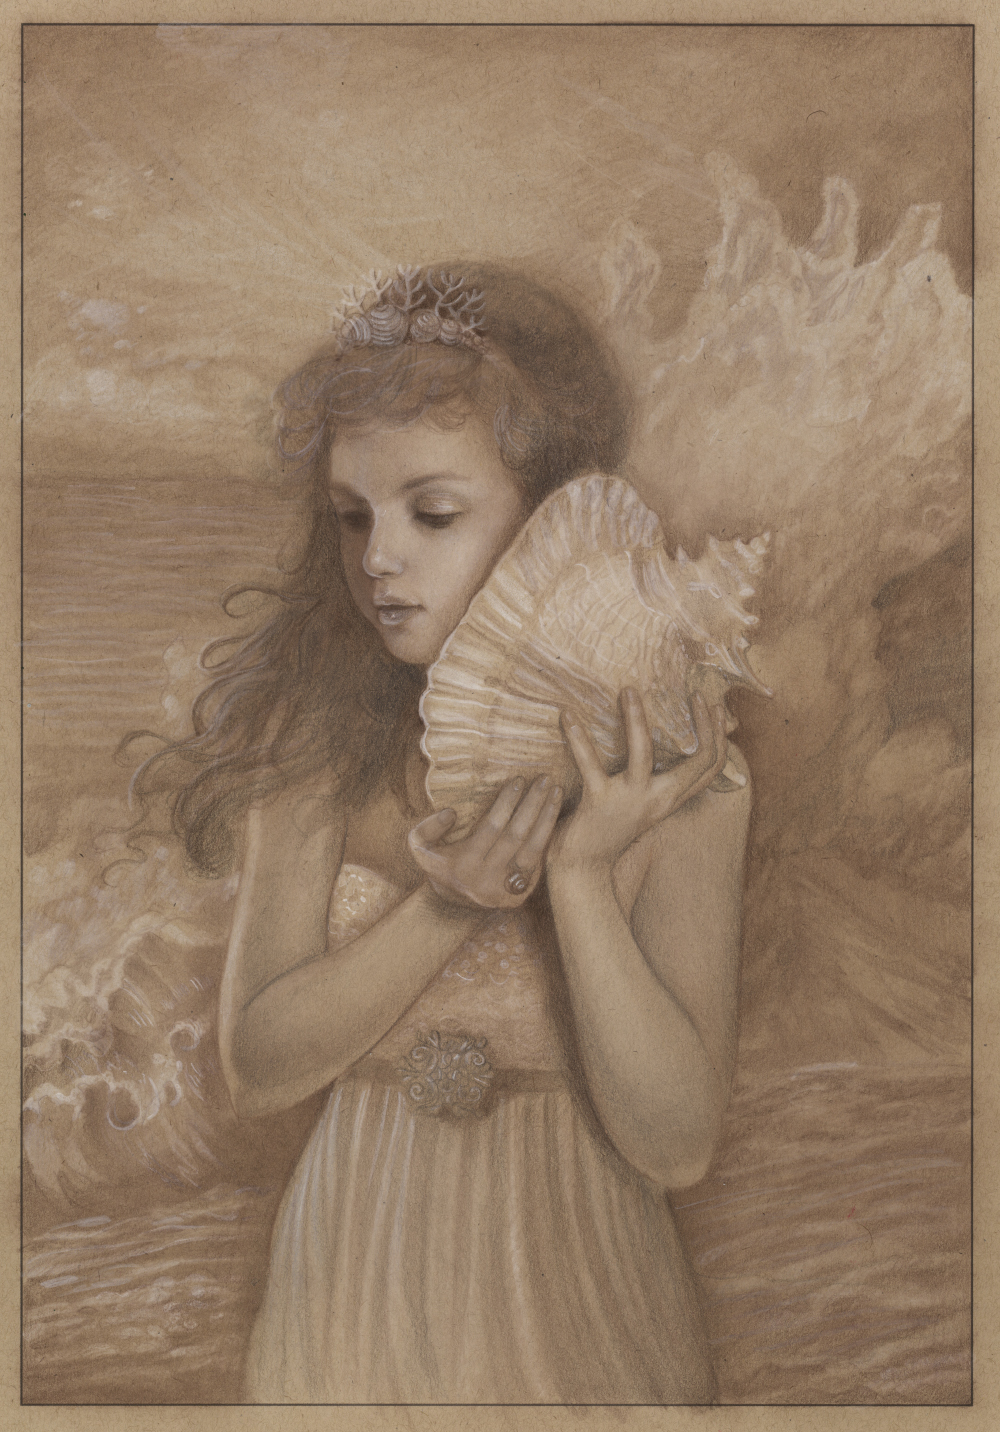 Pencil on toned Canson paper